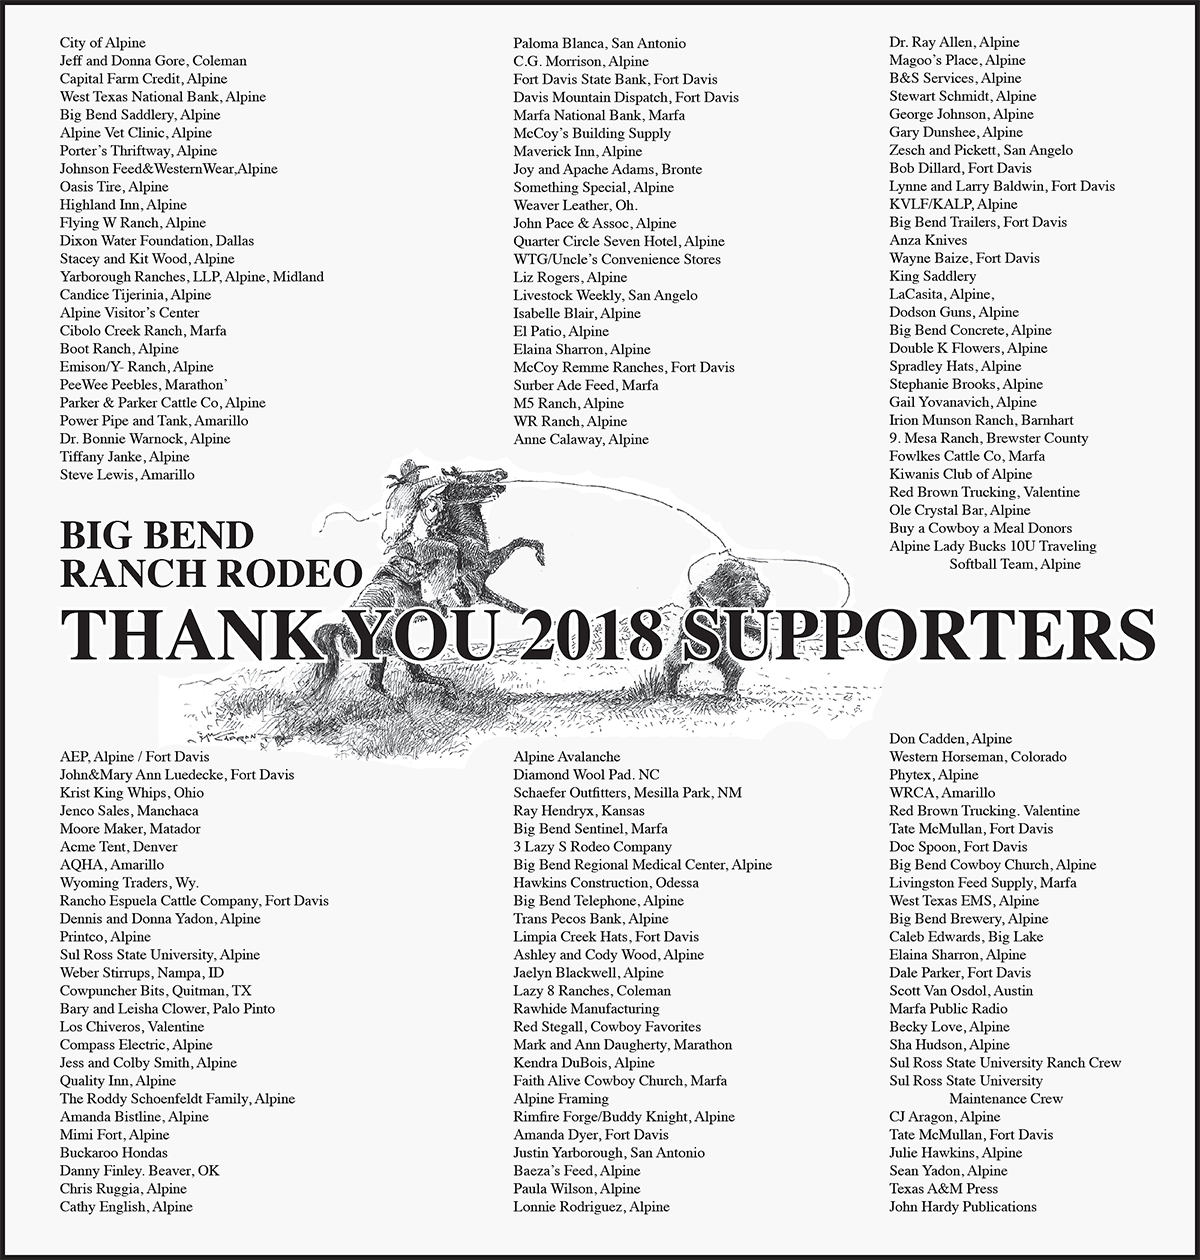 Big Bend Ranch Rodeo Thanks Their 2018 Supporters